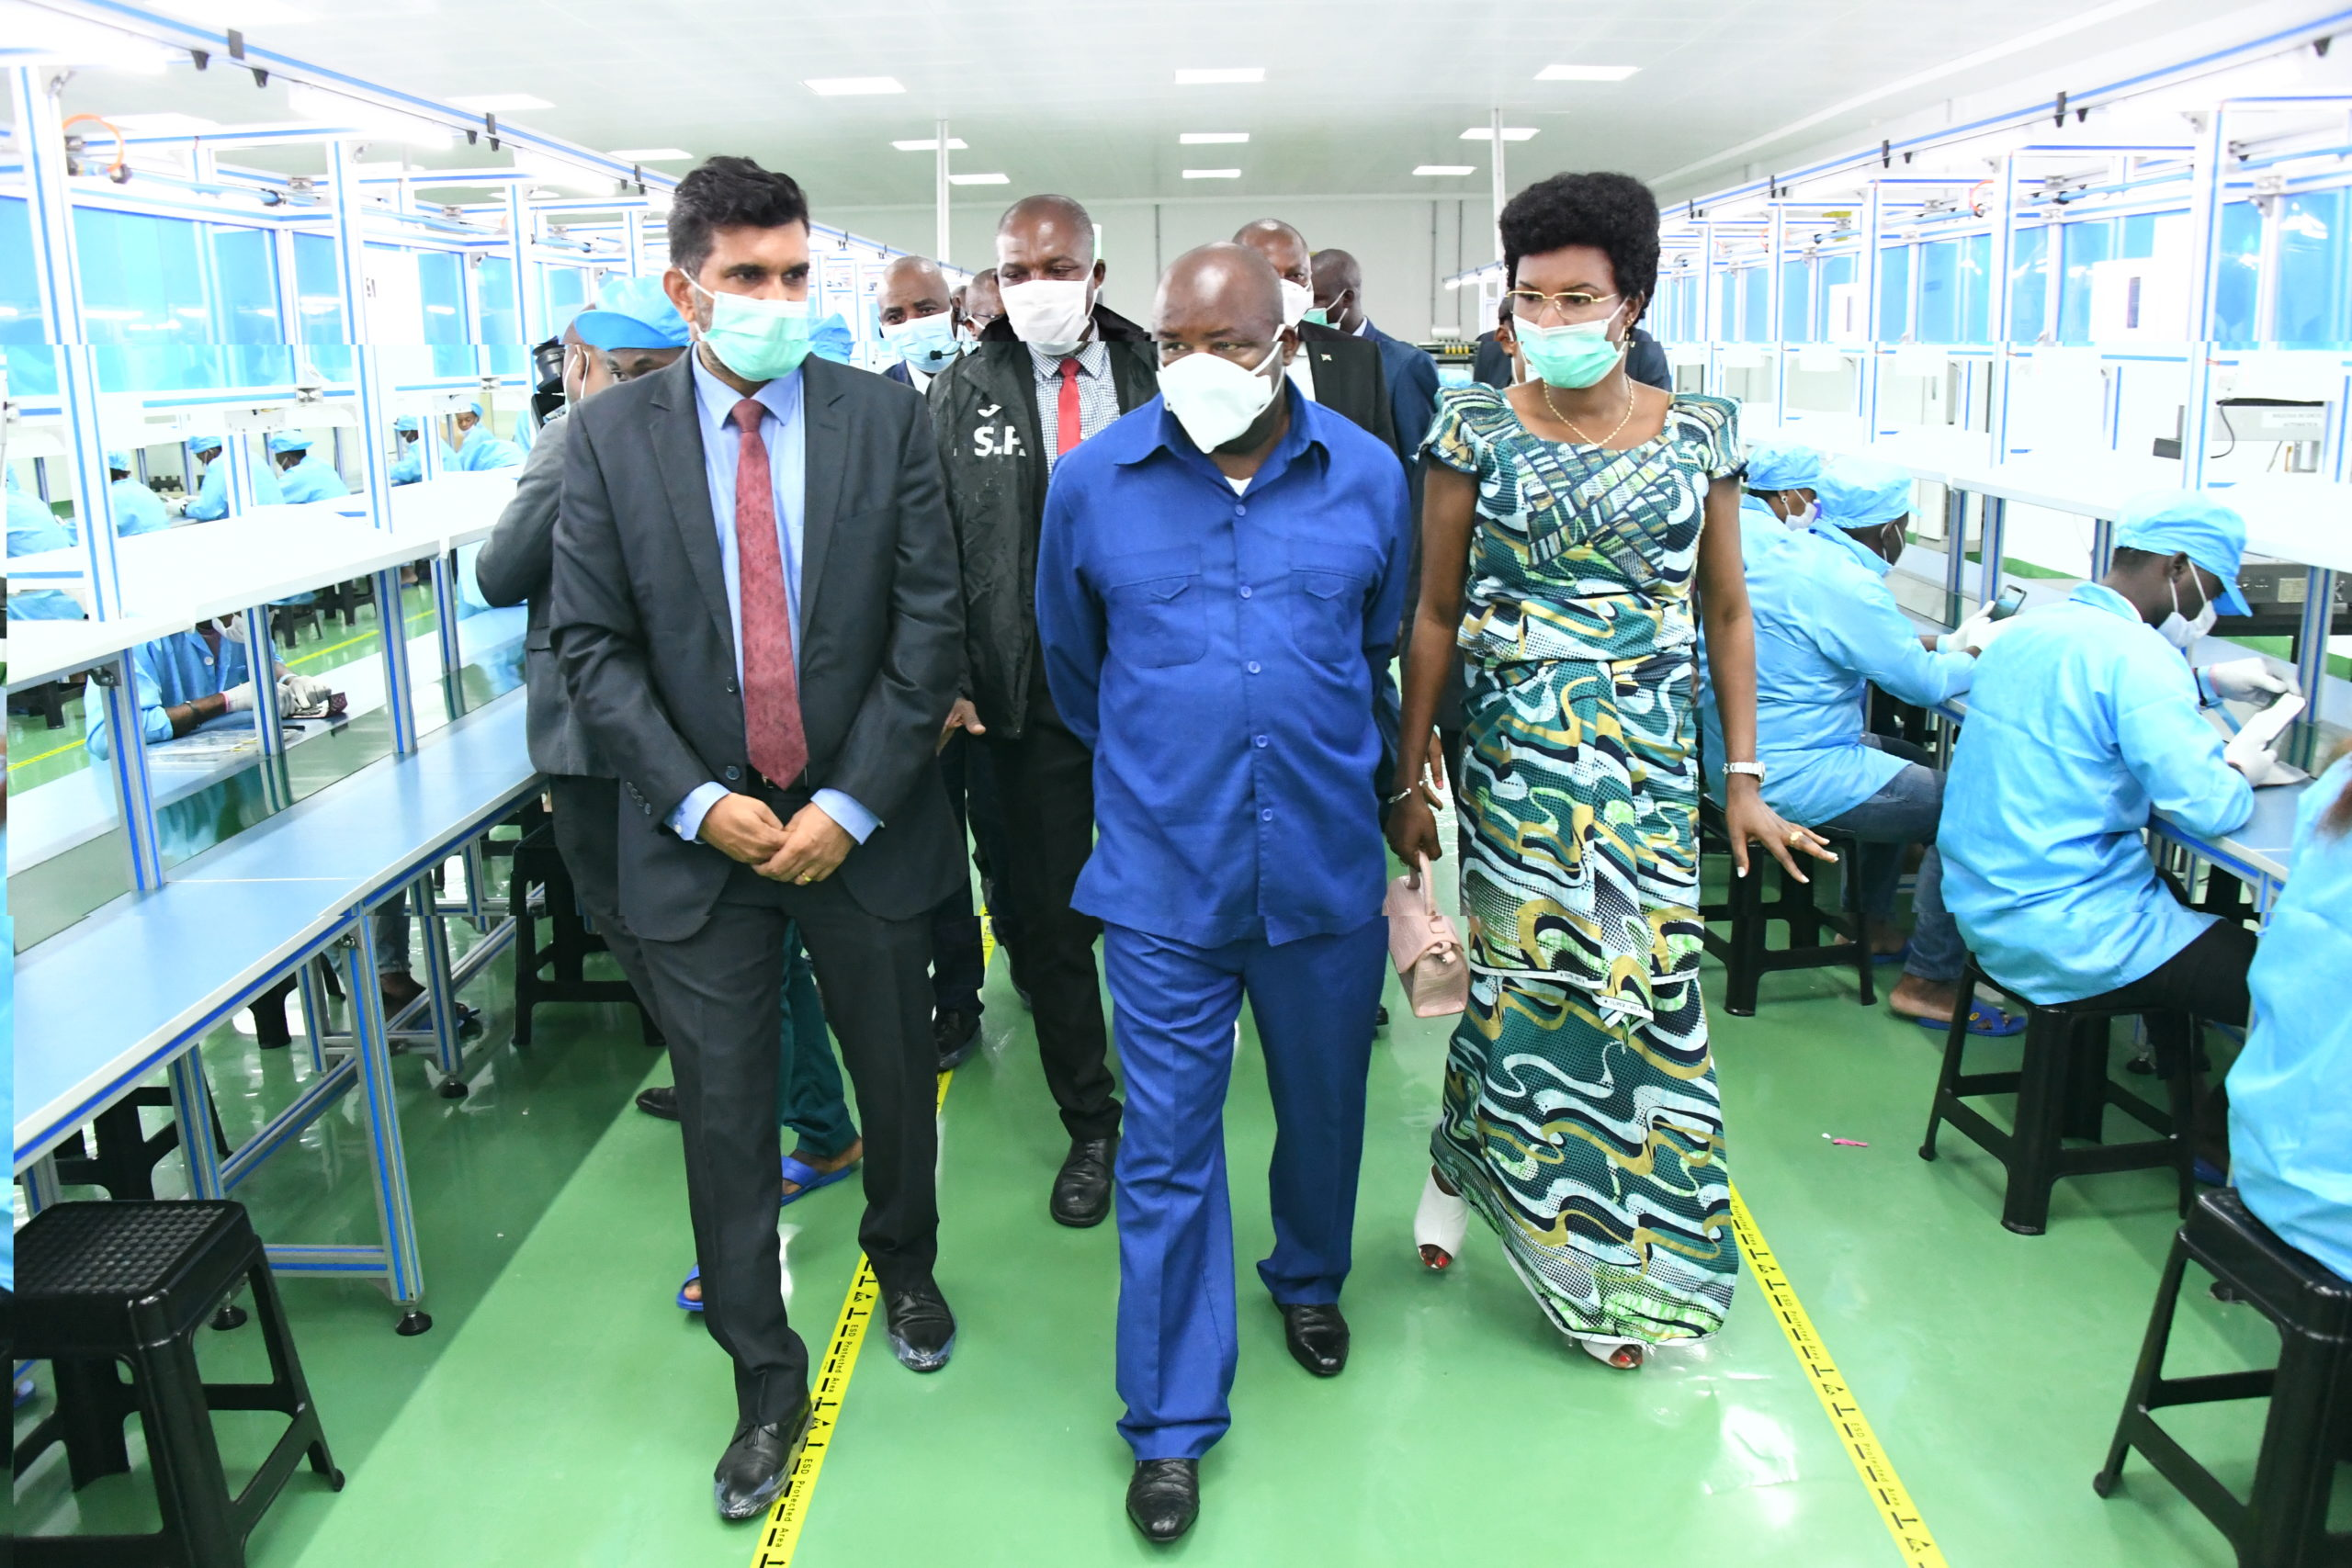 President Ndayishimiye continued his state visit in Bata city, Equatorial Guinea